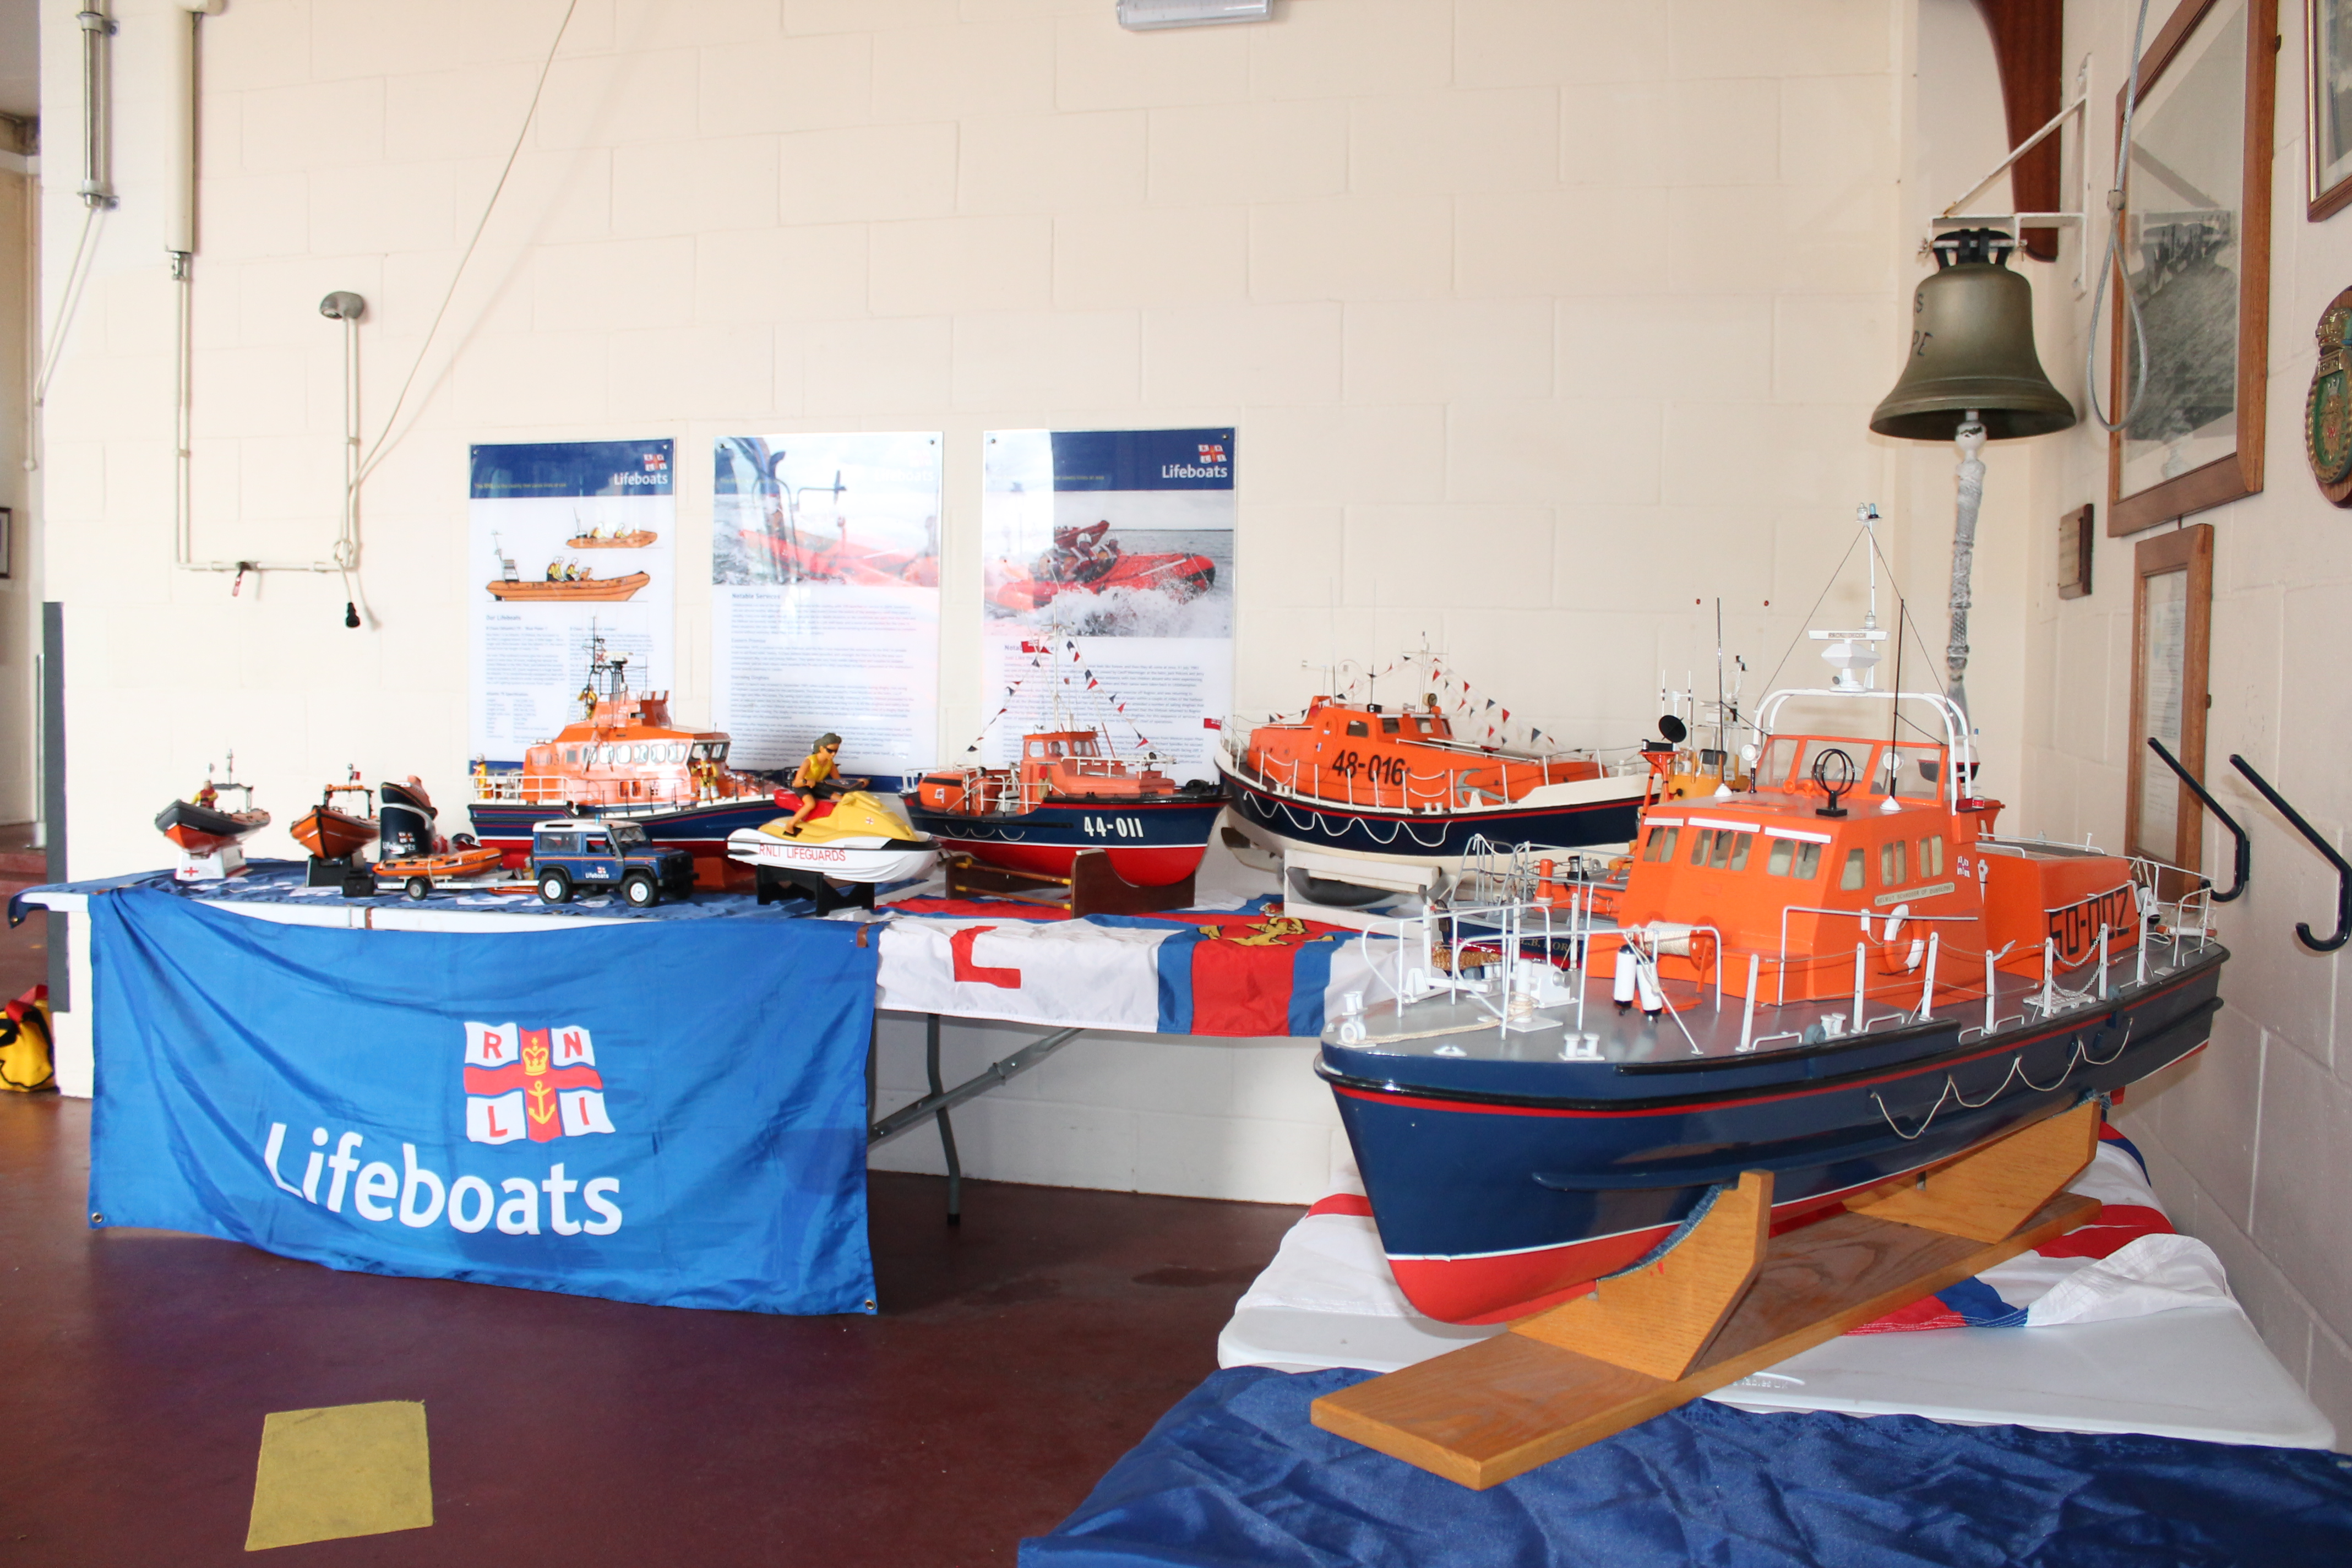 RNLI models of vessels past and present were on display in the boathouse